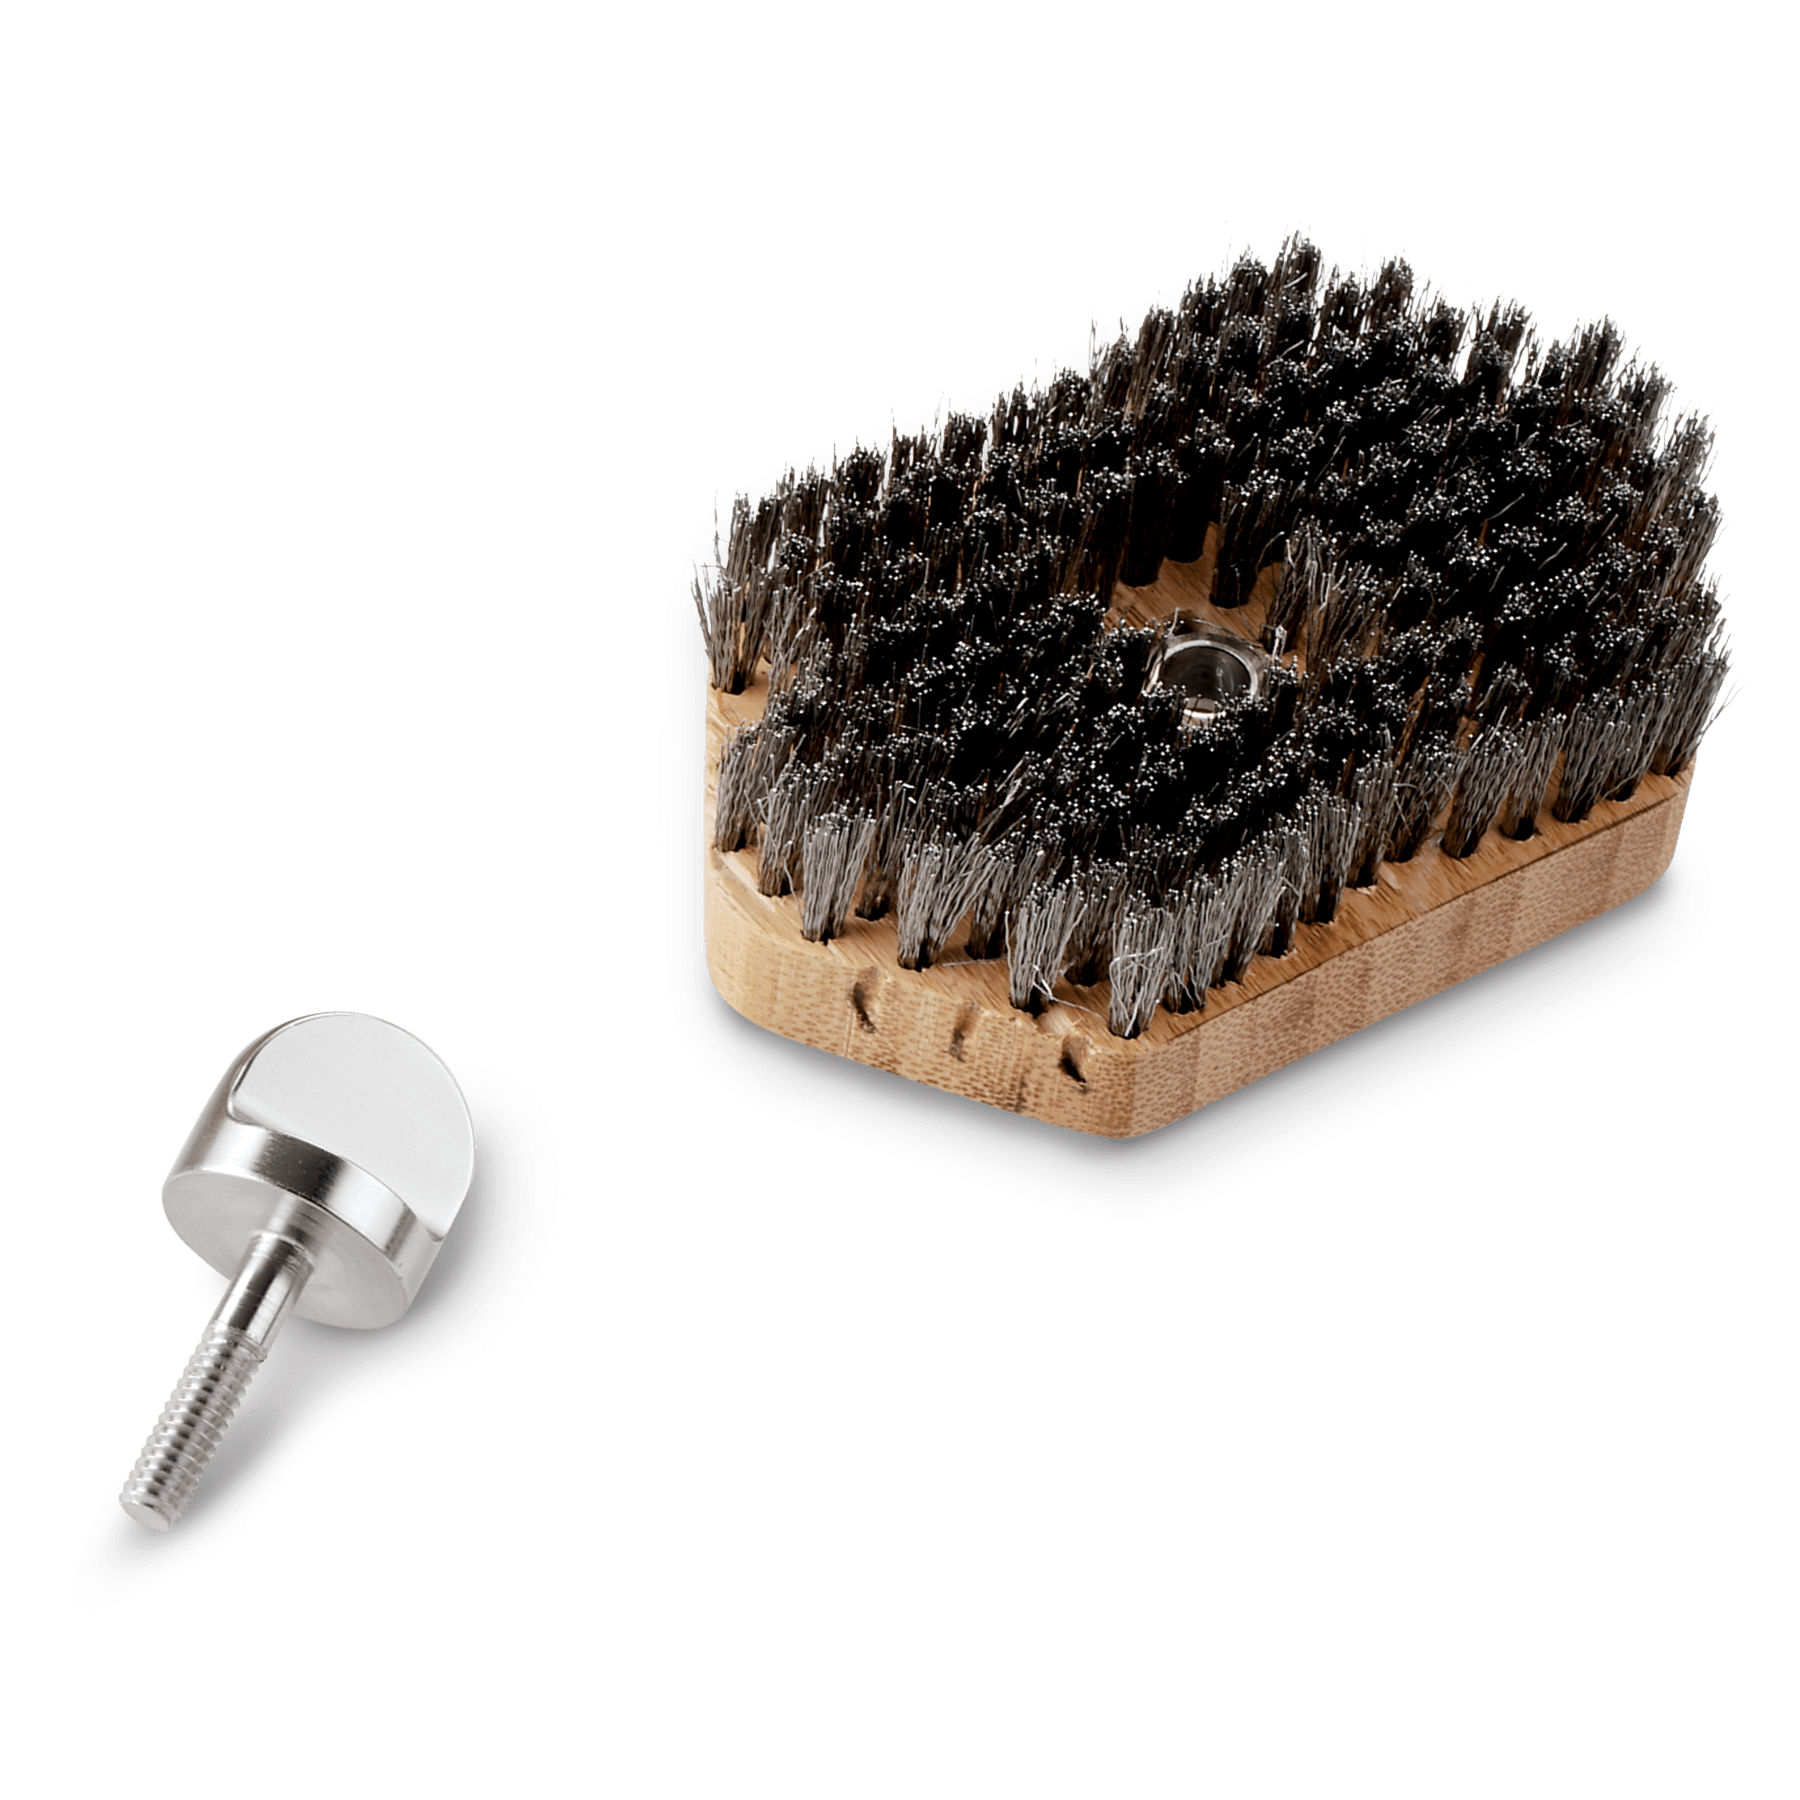 Premium Grill Brush Replacement Heads